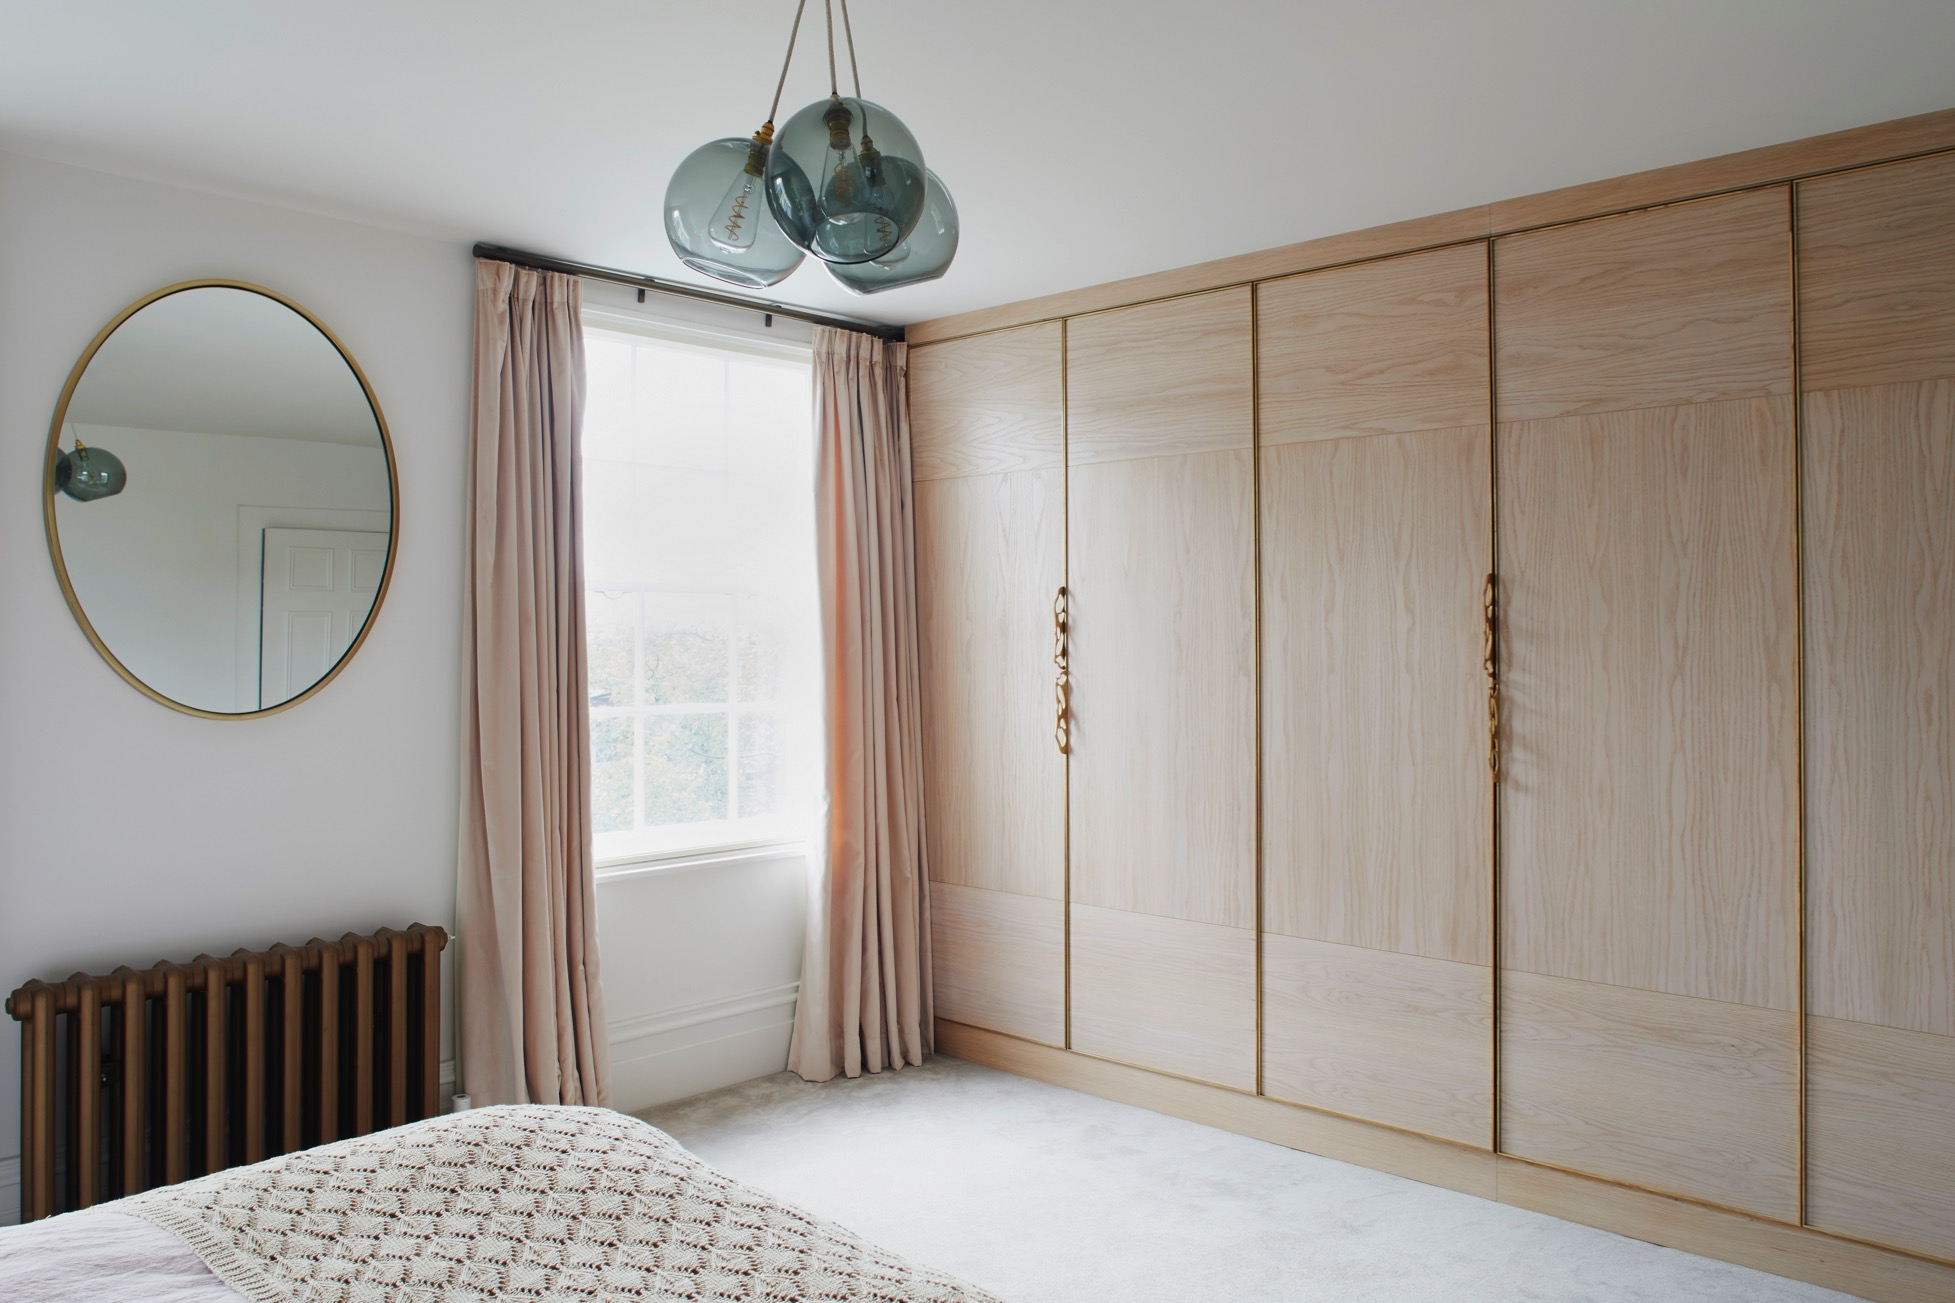 Bespoke bedroom cabinetry in soft pink with brass handles and details